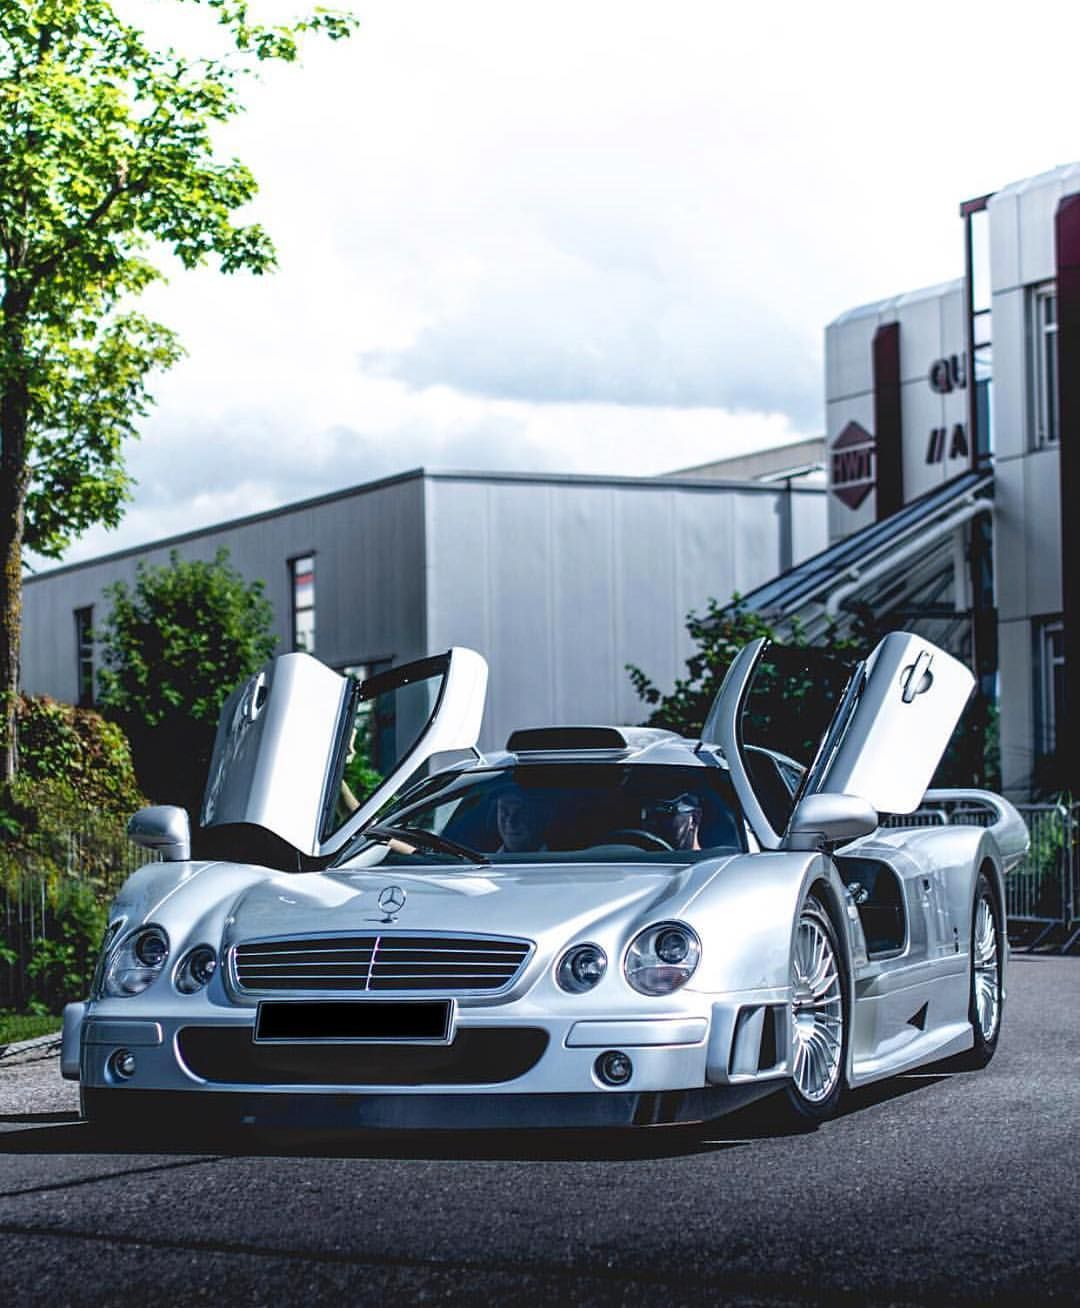 Mercedes Benz Clk Gtr 1 Of 25 The Unicorn The Birth Of The Supercar For Me The Clk Gtr Is A Car That Is W Mercedes Clk Mercedes Benz Sports Cars Luxury